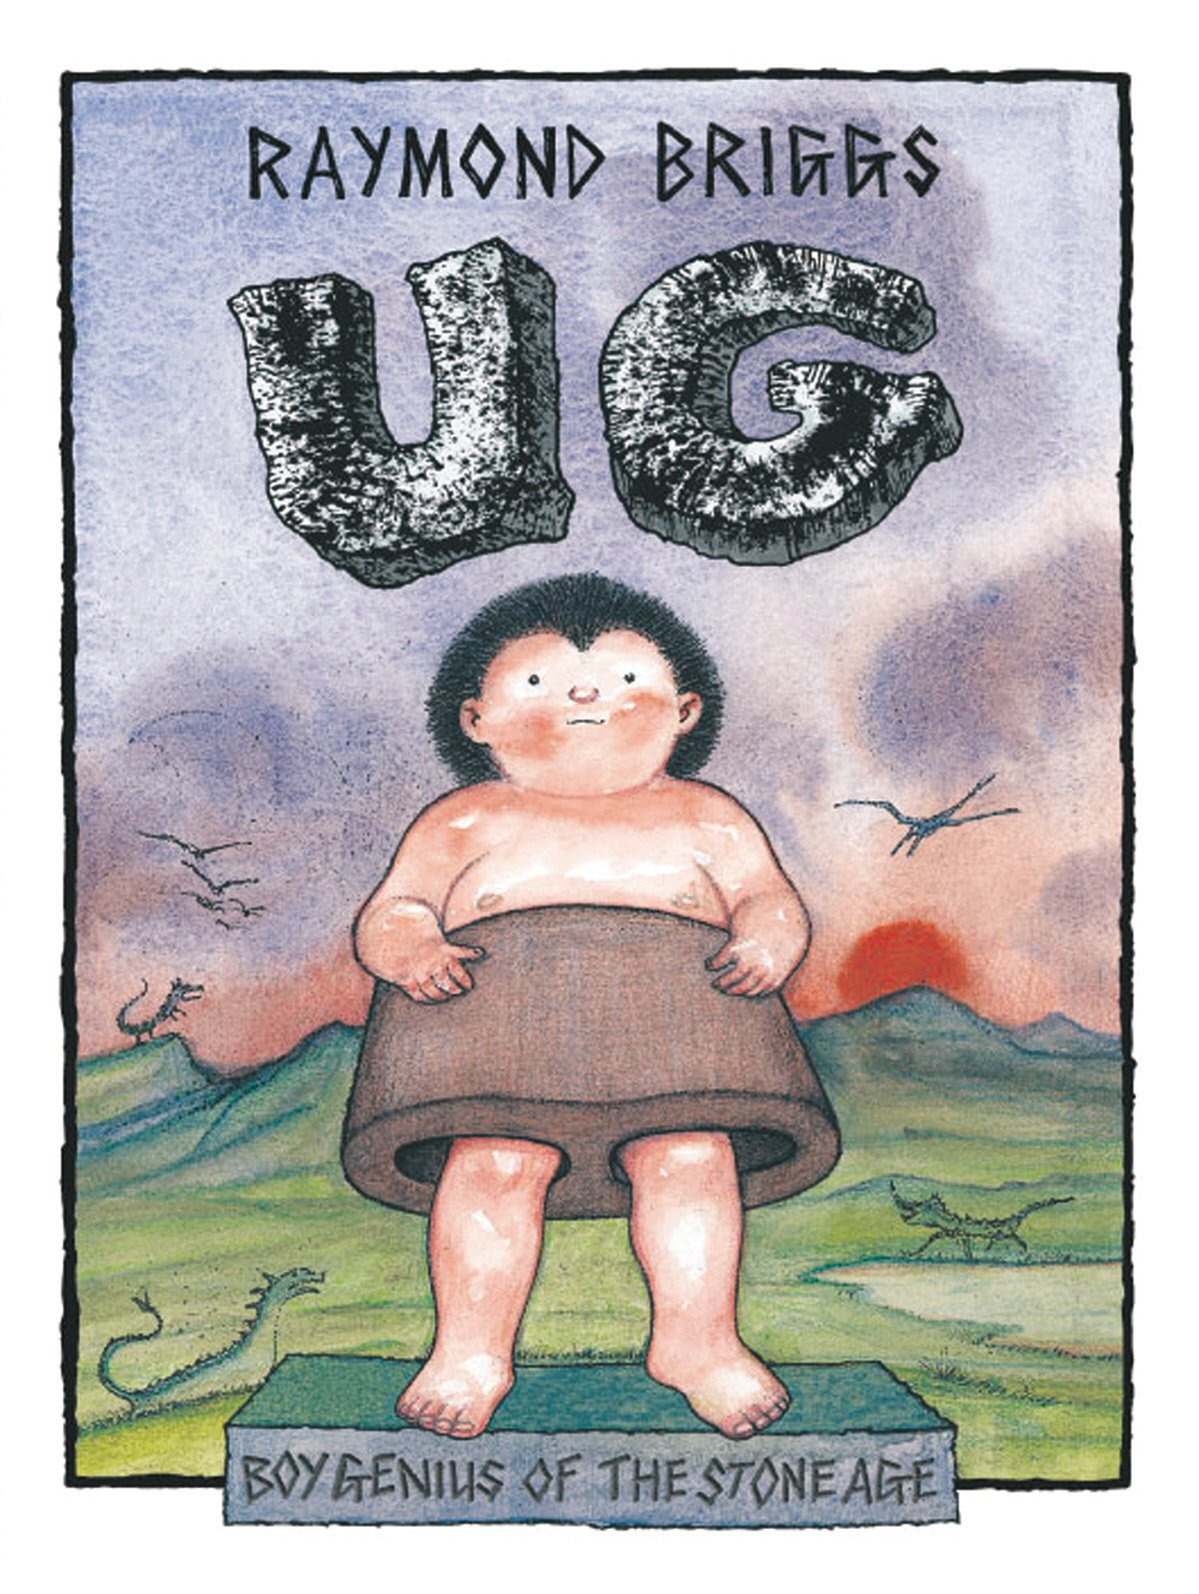 Ug : Boy Genius Of The Stone Age And His Search For Soft Trousers:  Amazon.co.uk: Briggs, Raymond: Books